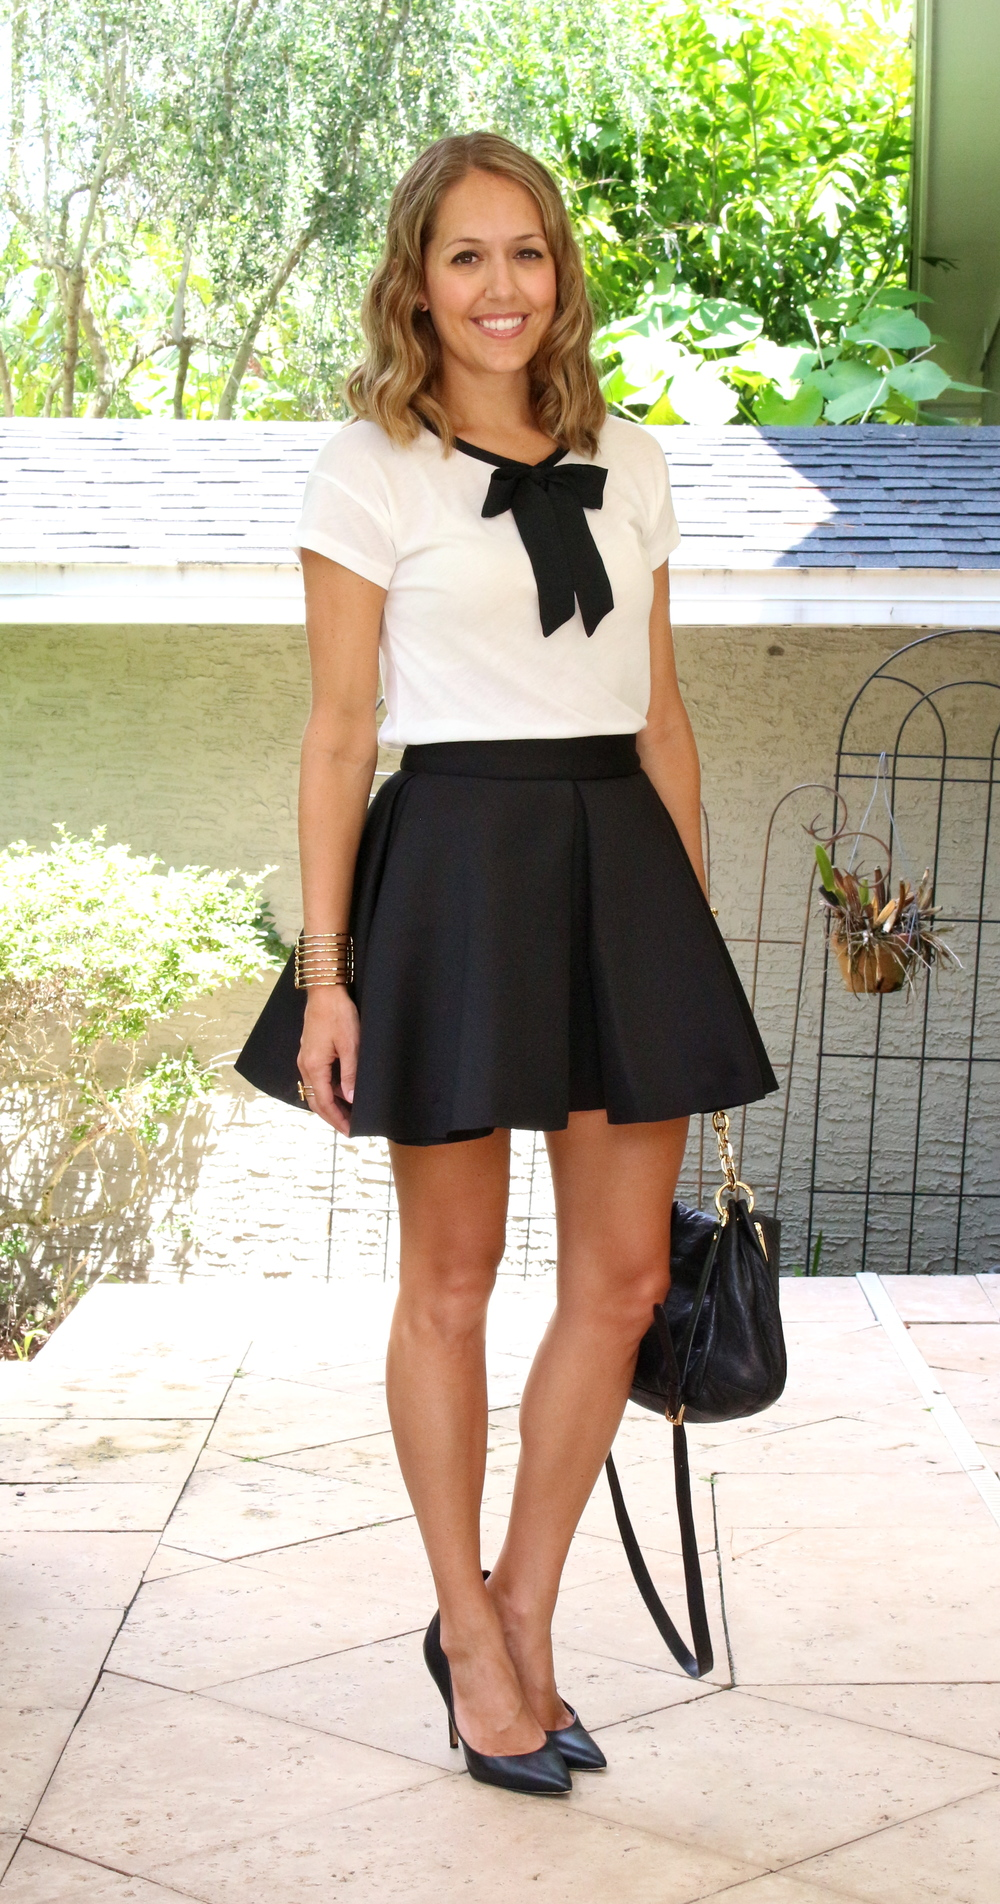 $20 bow top with black skirt